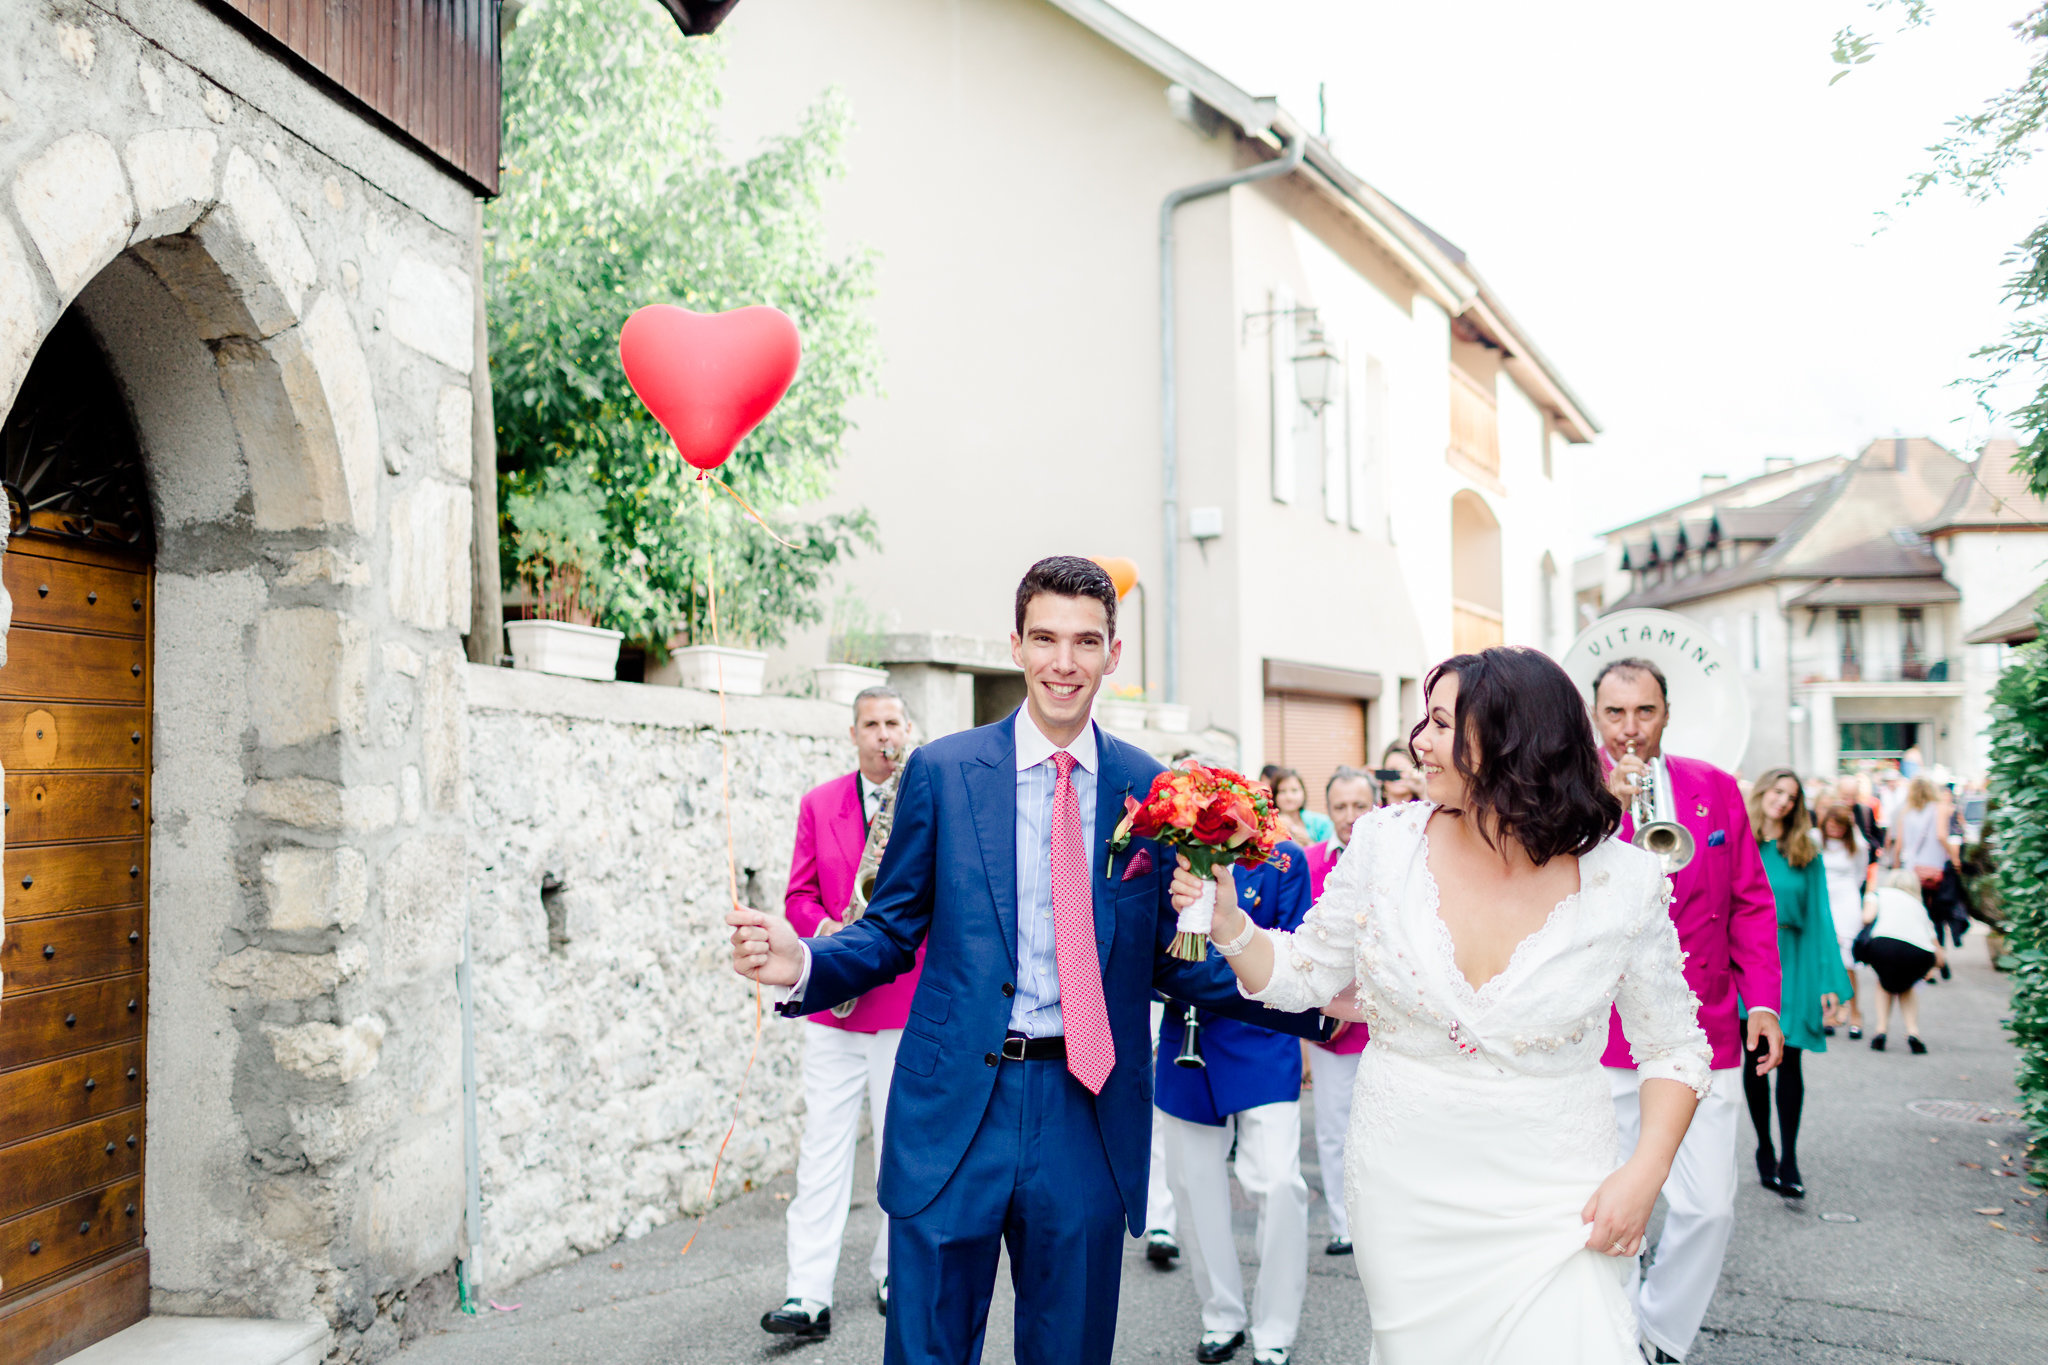 photographe-mariage-talloires-france-lisa-renault-photographie-wedding-destination-photographer-106